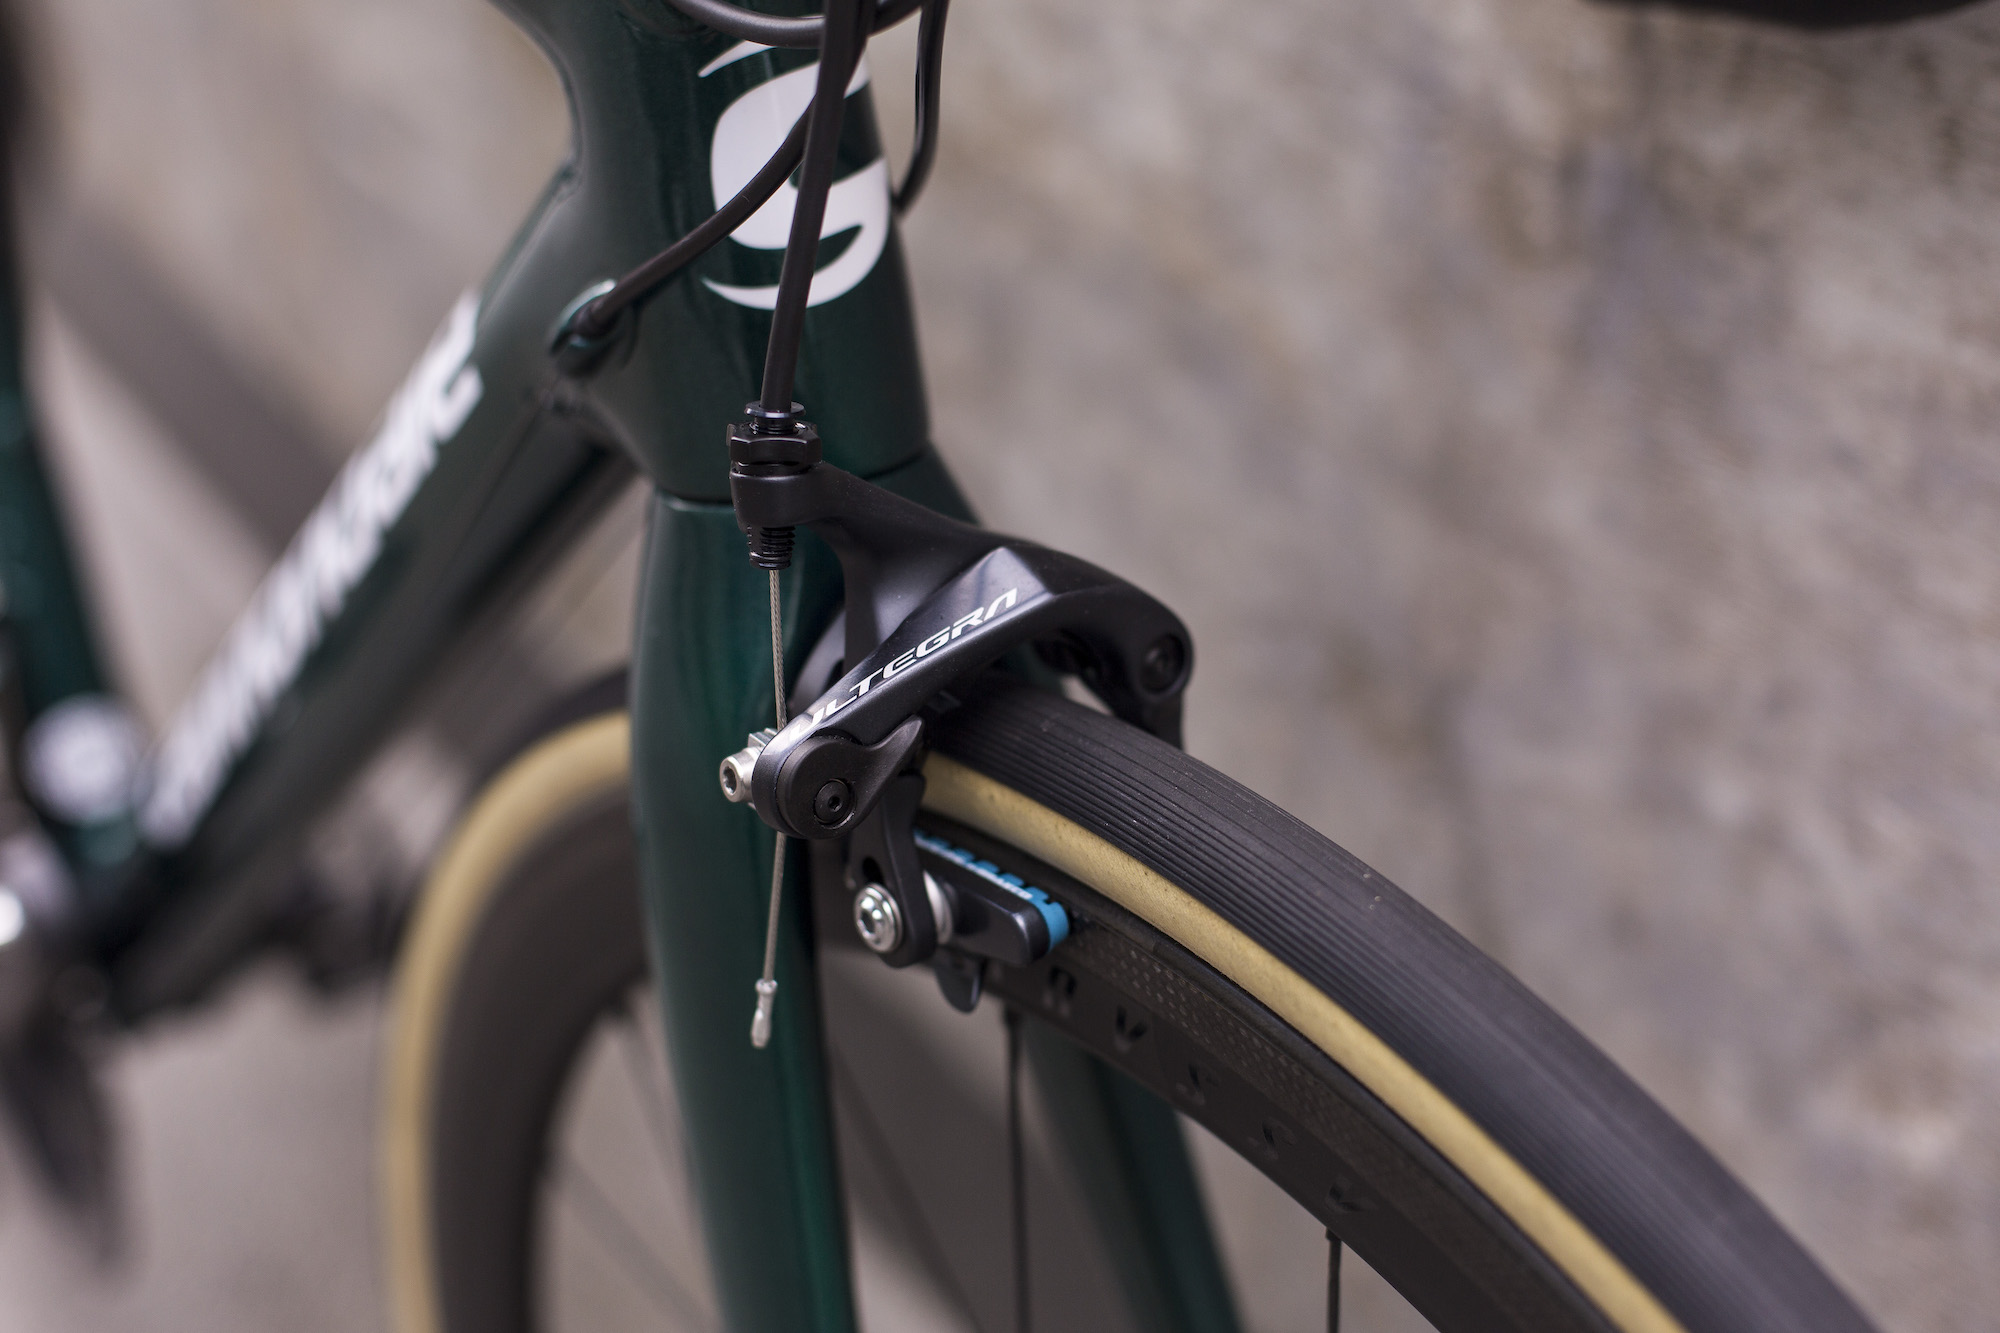 seabass-cycles-bikes-parts-instore-2-april-2019-cannondale-green-4288.jpg